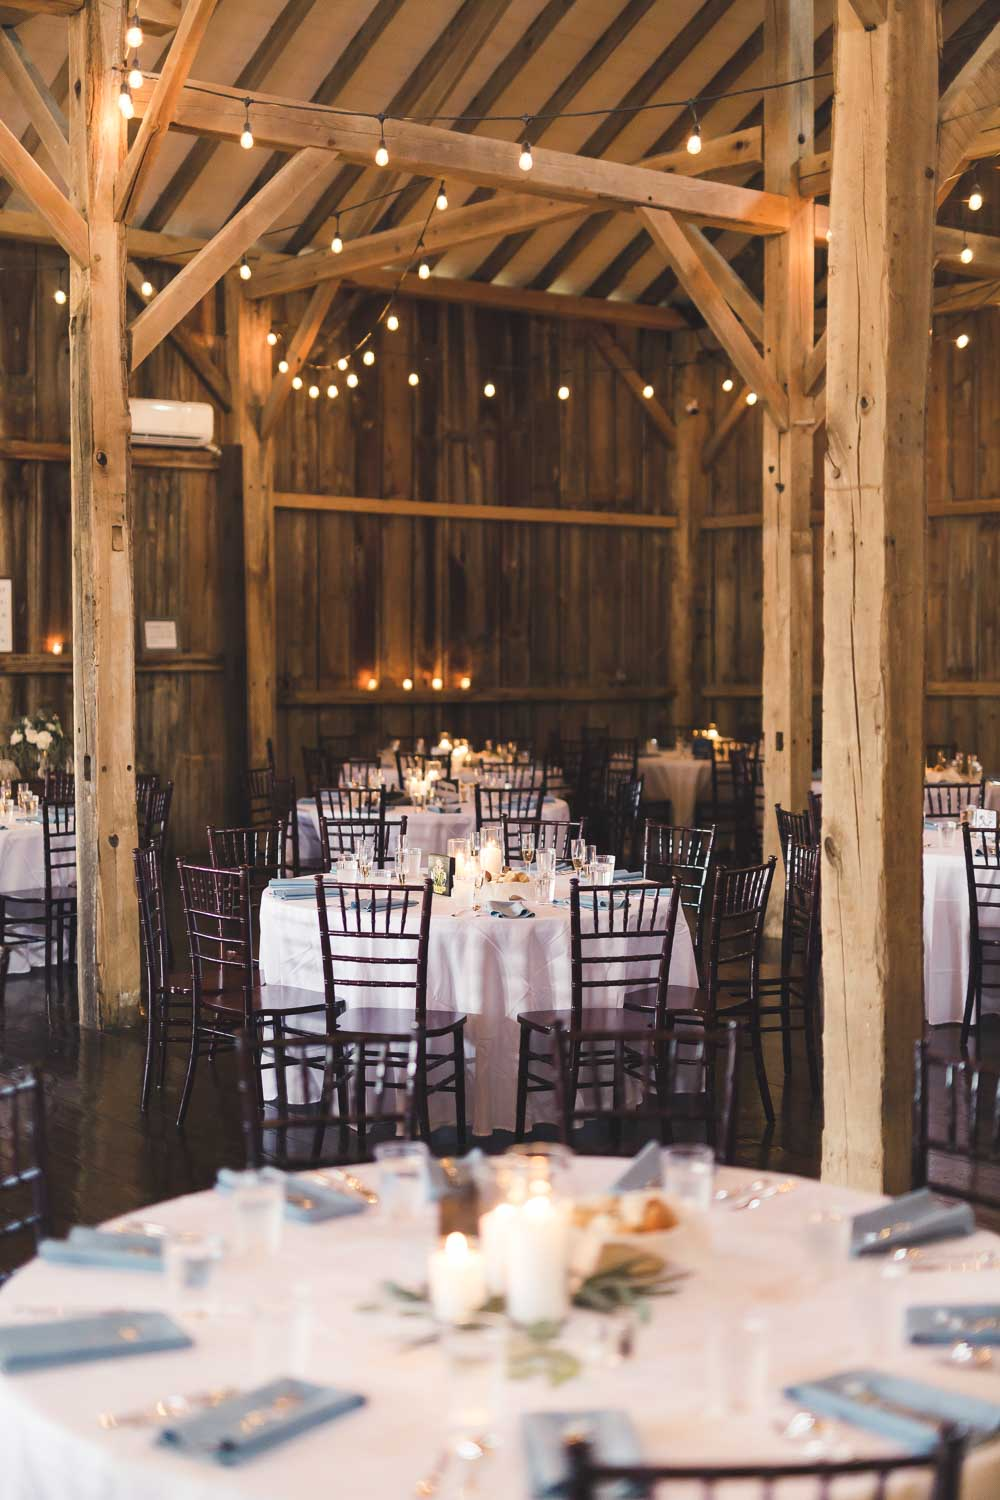 Barn wedding venue with table settings